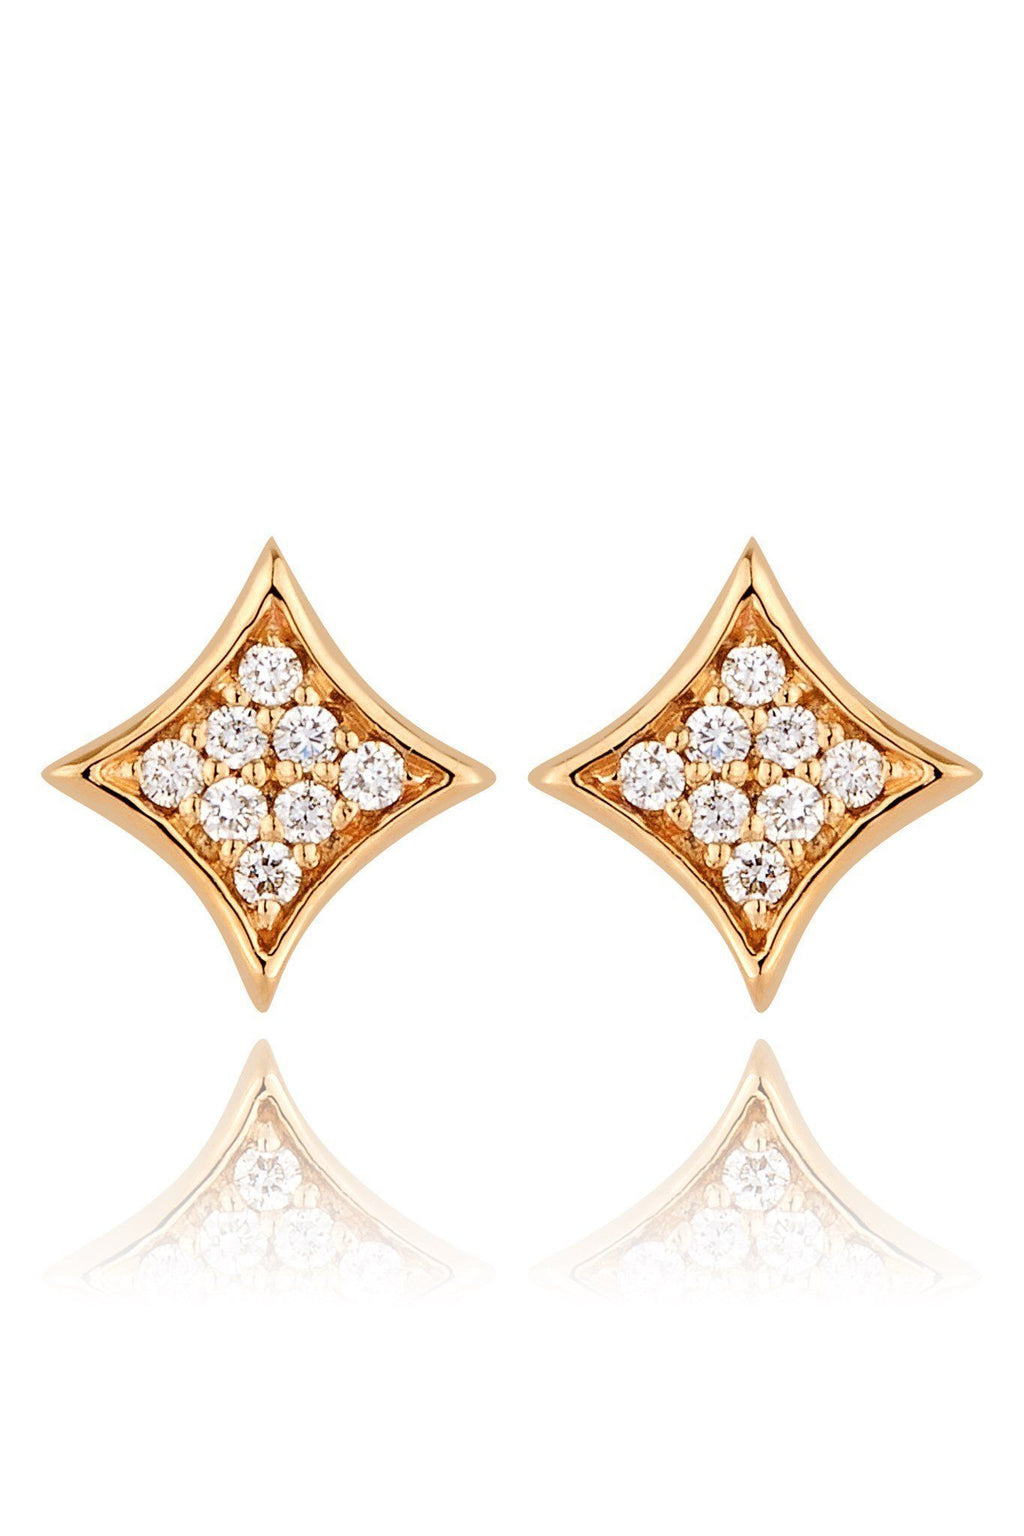 Rhombus Diamond Pavé Stud Earrings Earrings Lark and Berry Yellow Gold